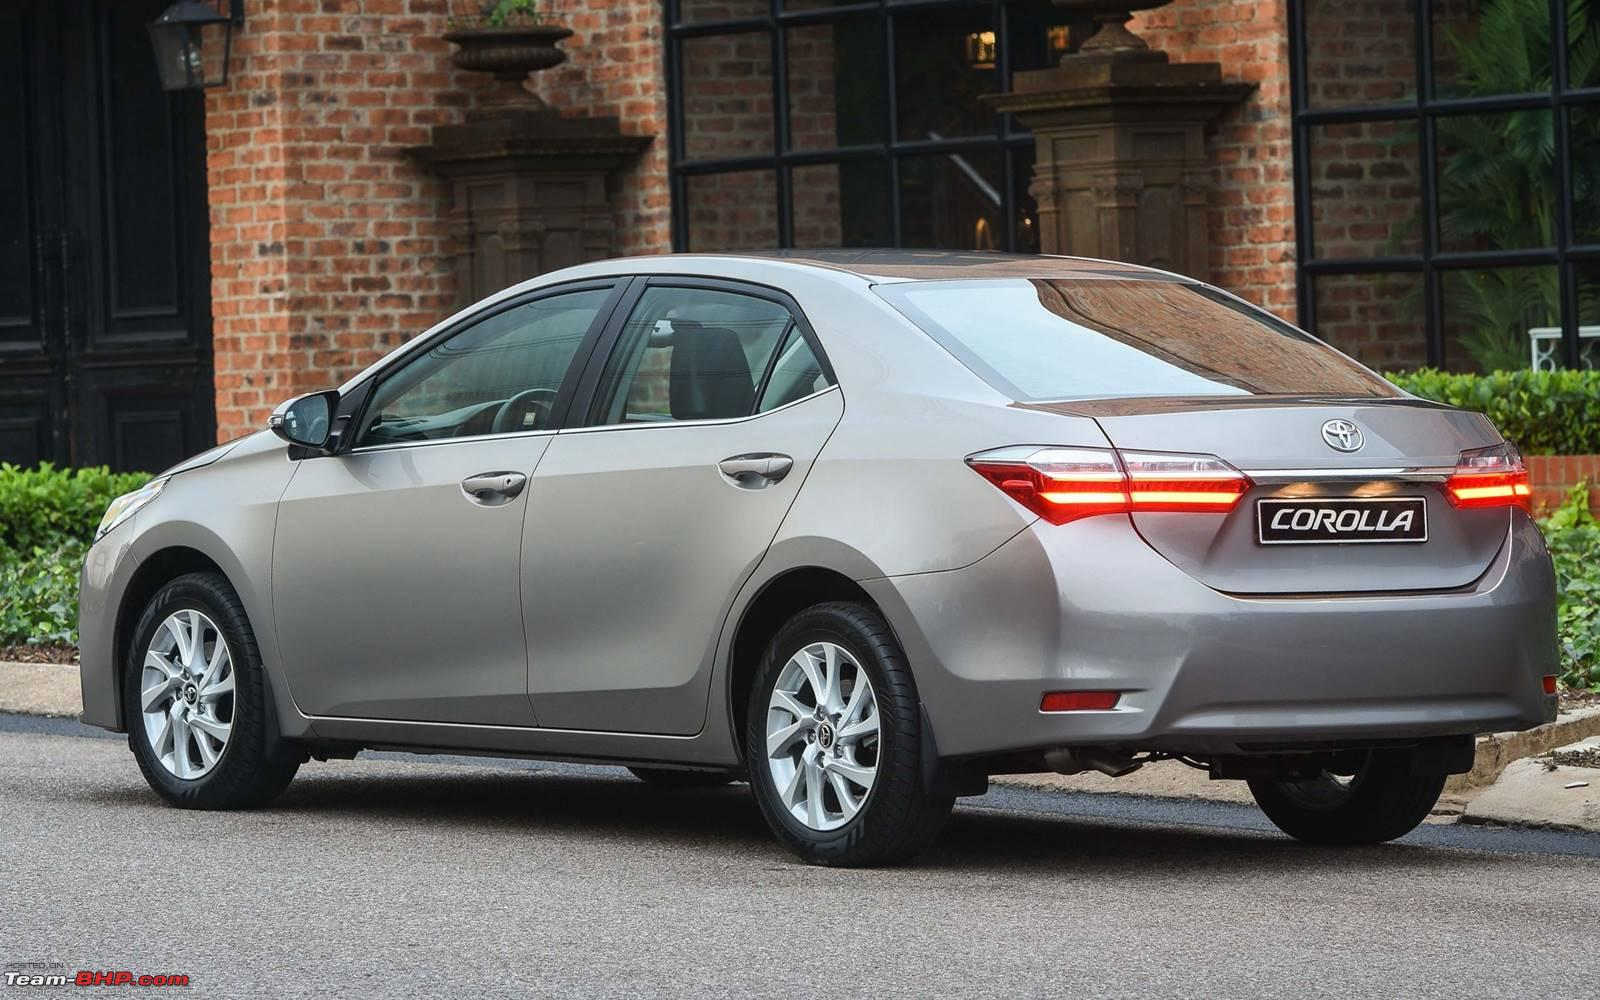 new corolla altis launch date brand toyota camry for sale in ghana facelift edit launched at rs 15 88 lakh toyotacorolla2018